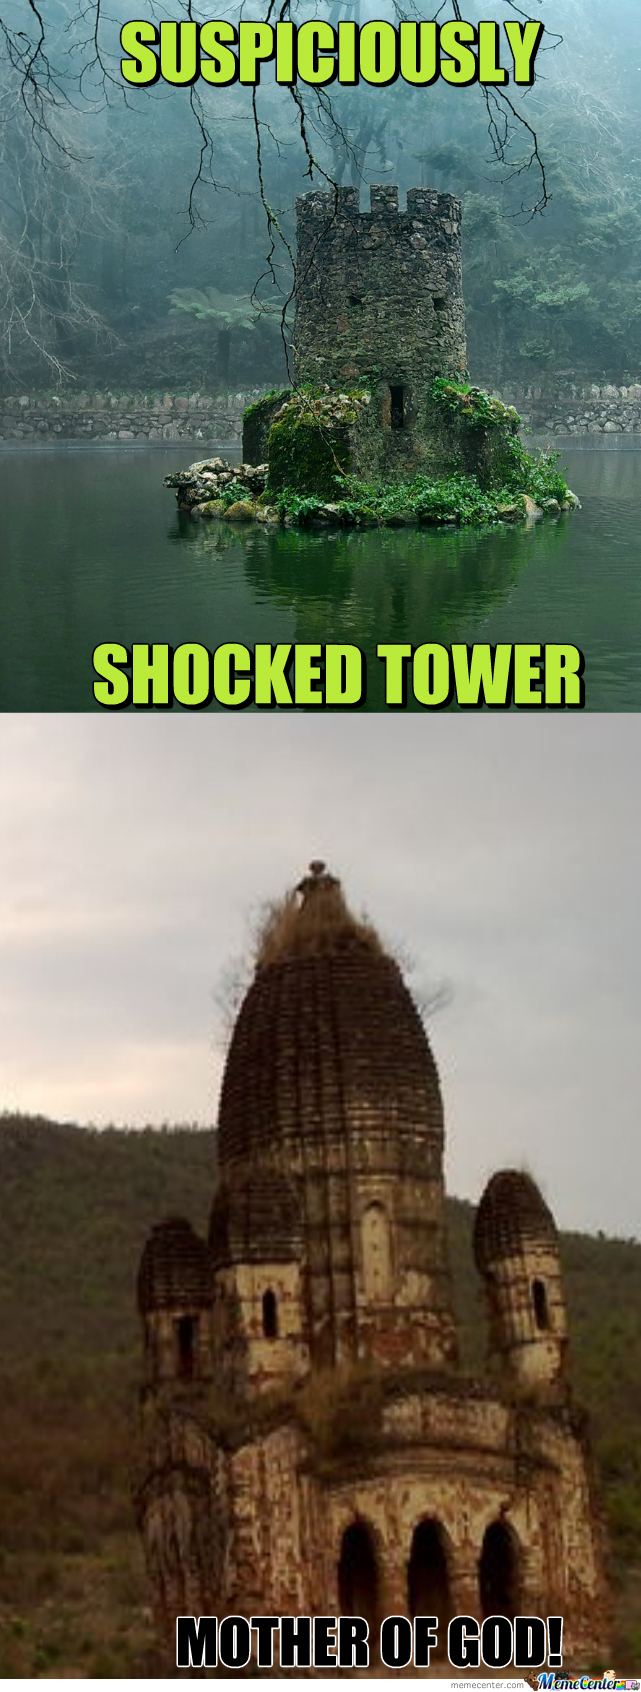 [RMX] Suspiciously Shocked Tower